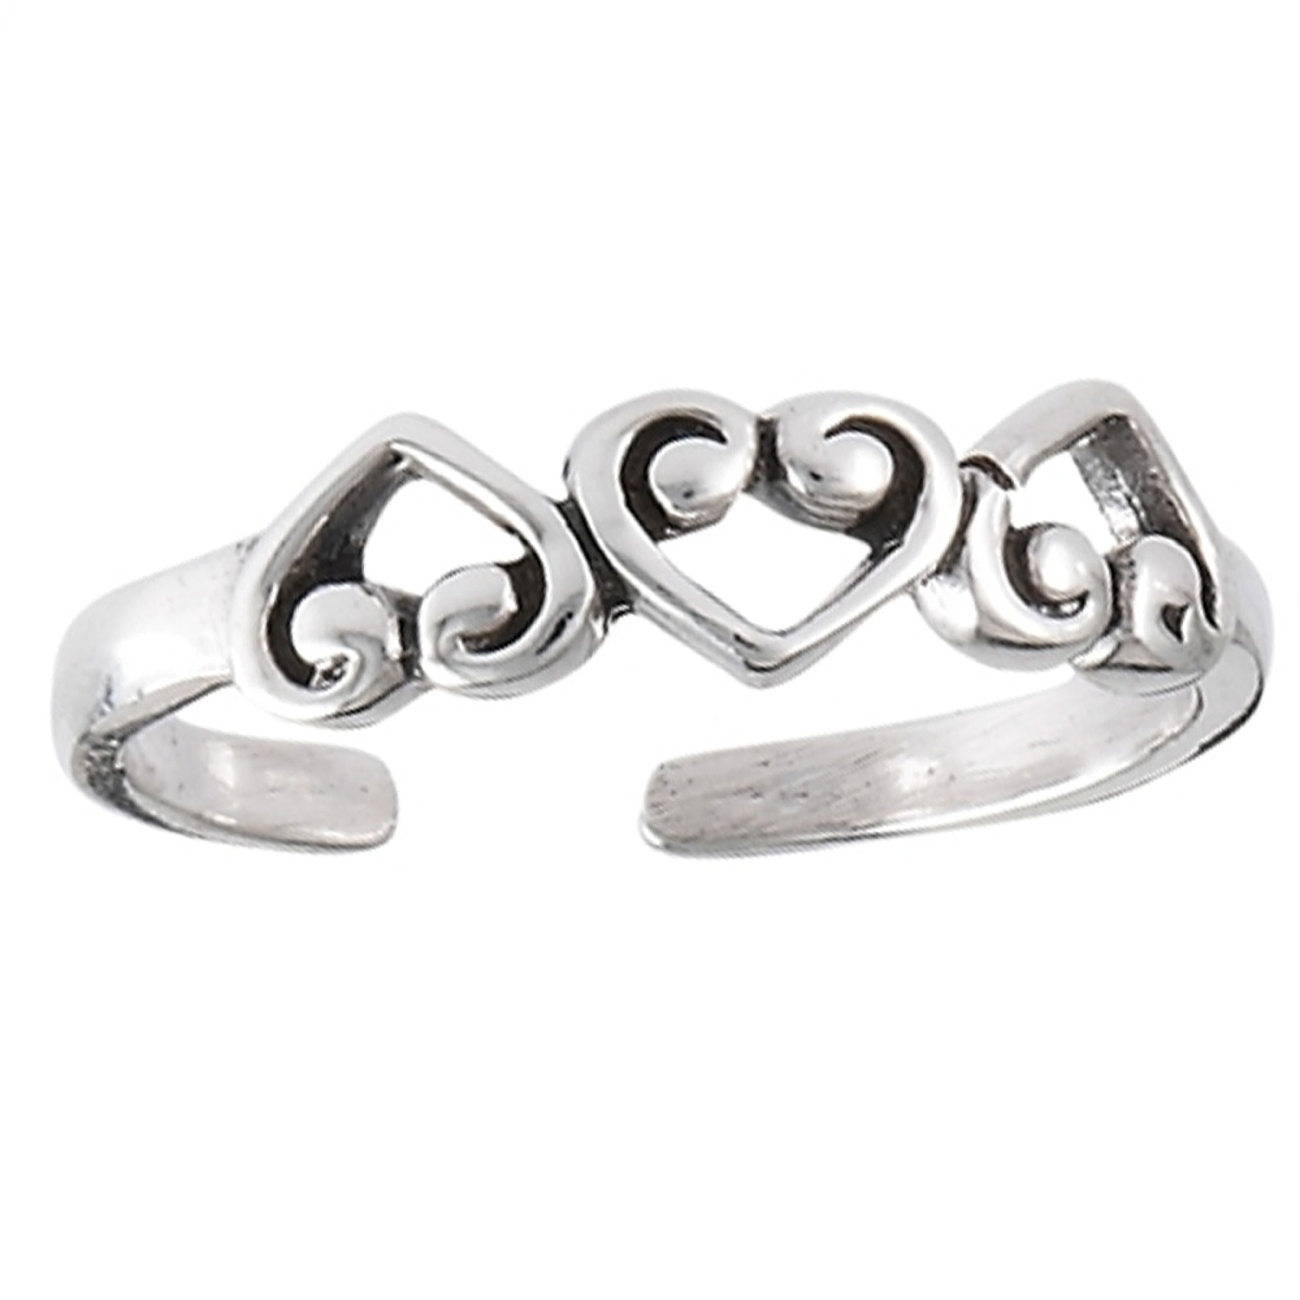 Three Scrolled Inverted Heartsd Adjustable Toe Ring